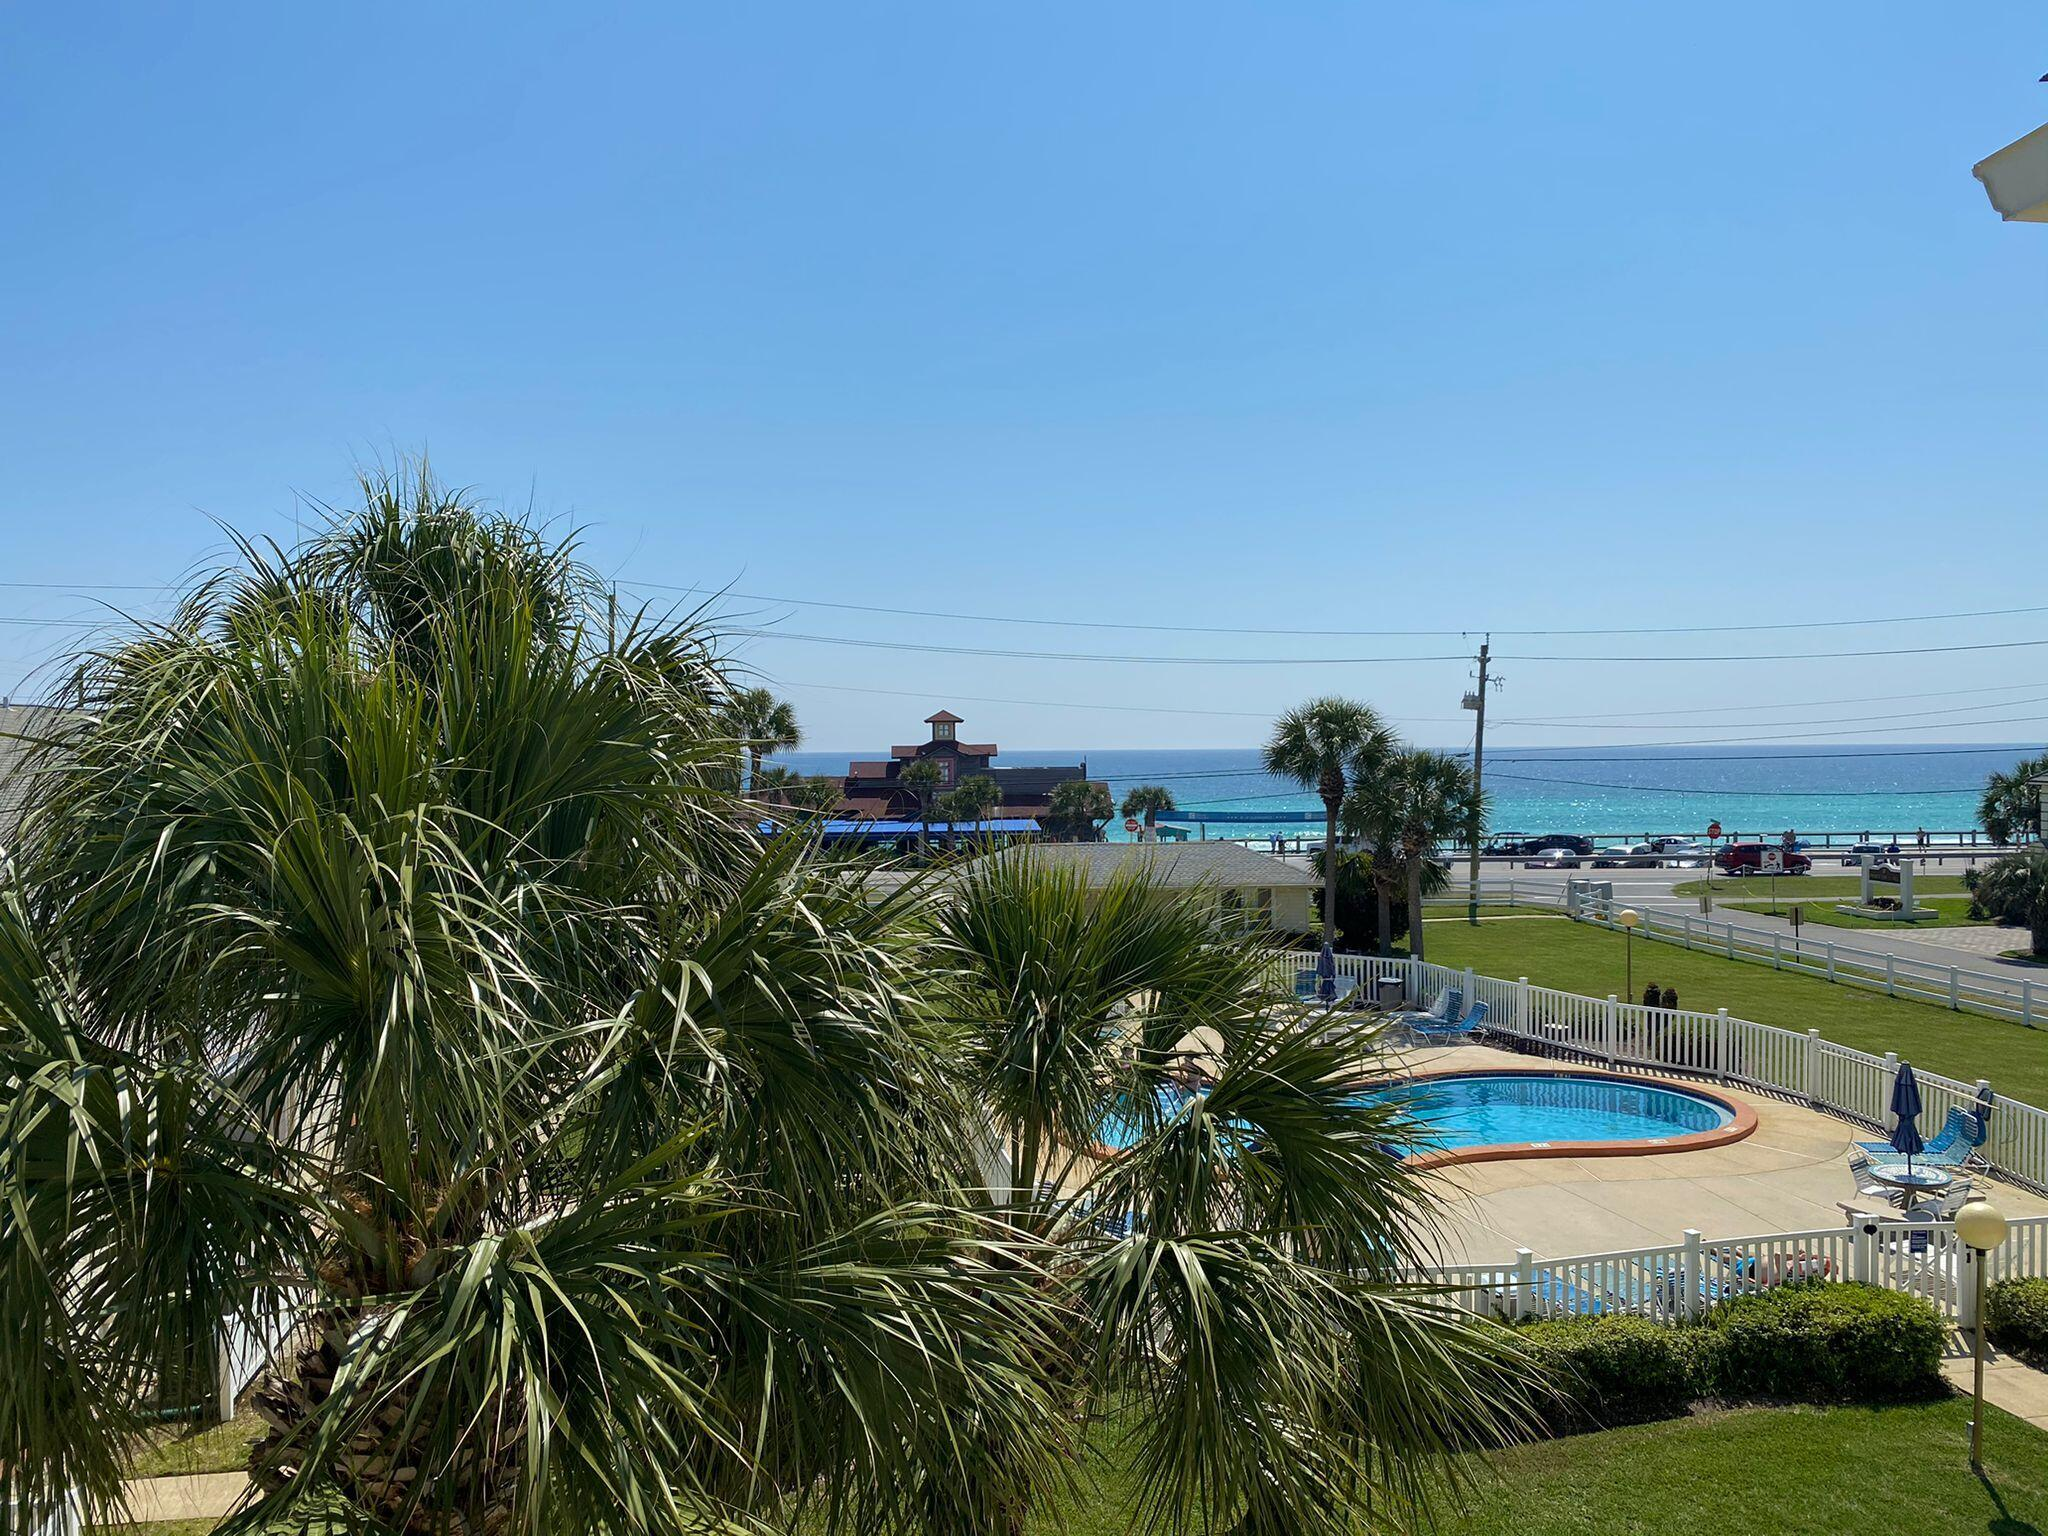 *Please present Highest and Best by Tuesday 6/8 at 5:00 pm* .ATTENTION INVESTORS!  This condo has it all.  Strong gross rental history of 62K just since May 2020 projected to do 70K with current management.  Best location directly across from Pompano Joes. Beach access just a few steps away, This condo was fully renovated in 2020 with beautiful furnishings and everything you need for relaxation and fun.  A few of the highlights that were added include gorgeous wood-look tile flooring throughout,  white quartz counter tops, and custom built bunk beds with a twin over a queen.  A new AC unit was recently installed March 2021.  This is as turn key as it gets whether you are looking for a great rental or fabulous second home.  You really don't want to miss out on this one!